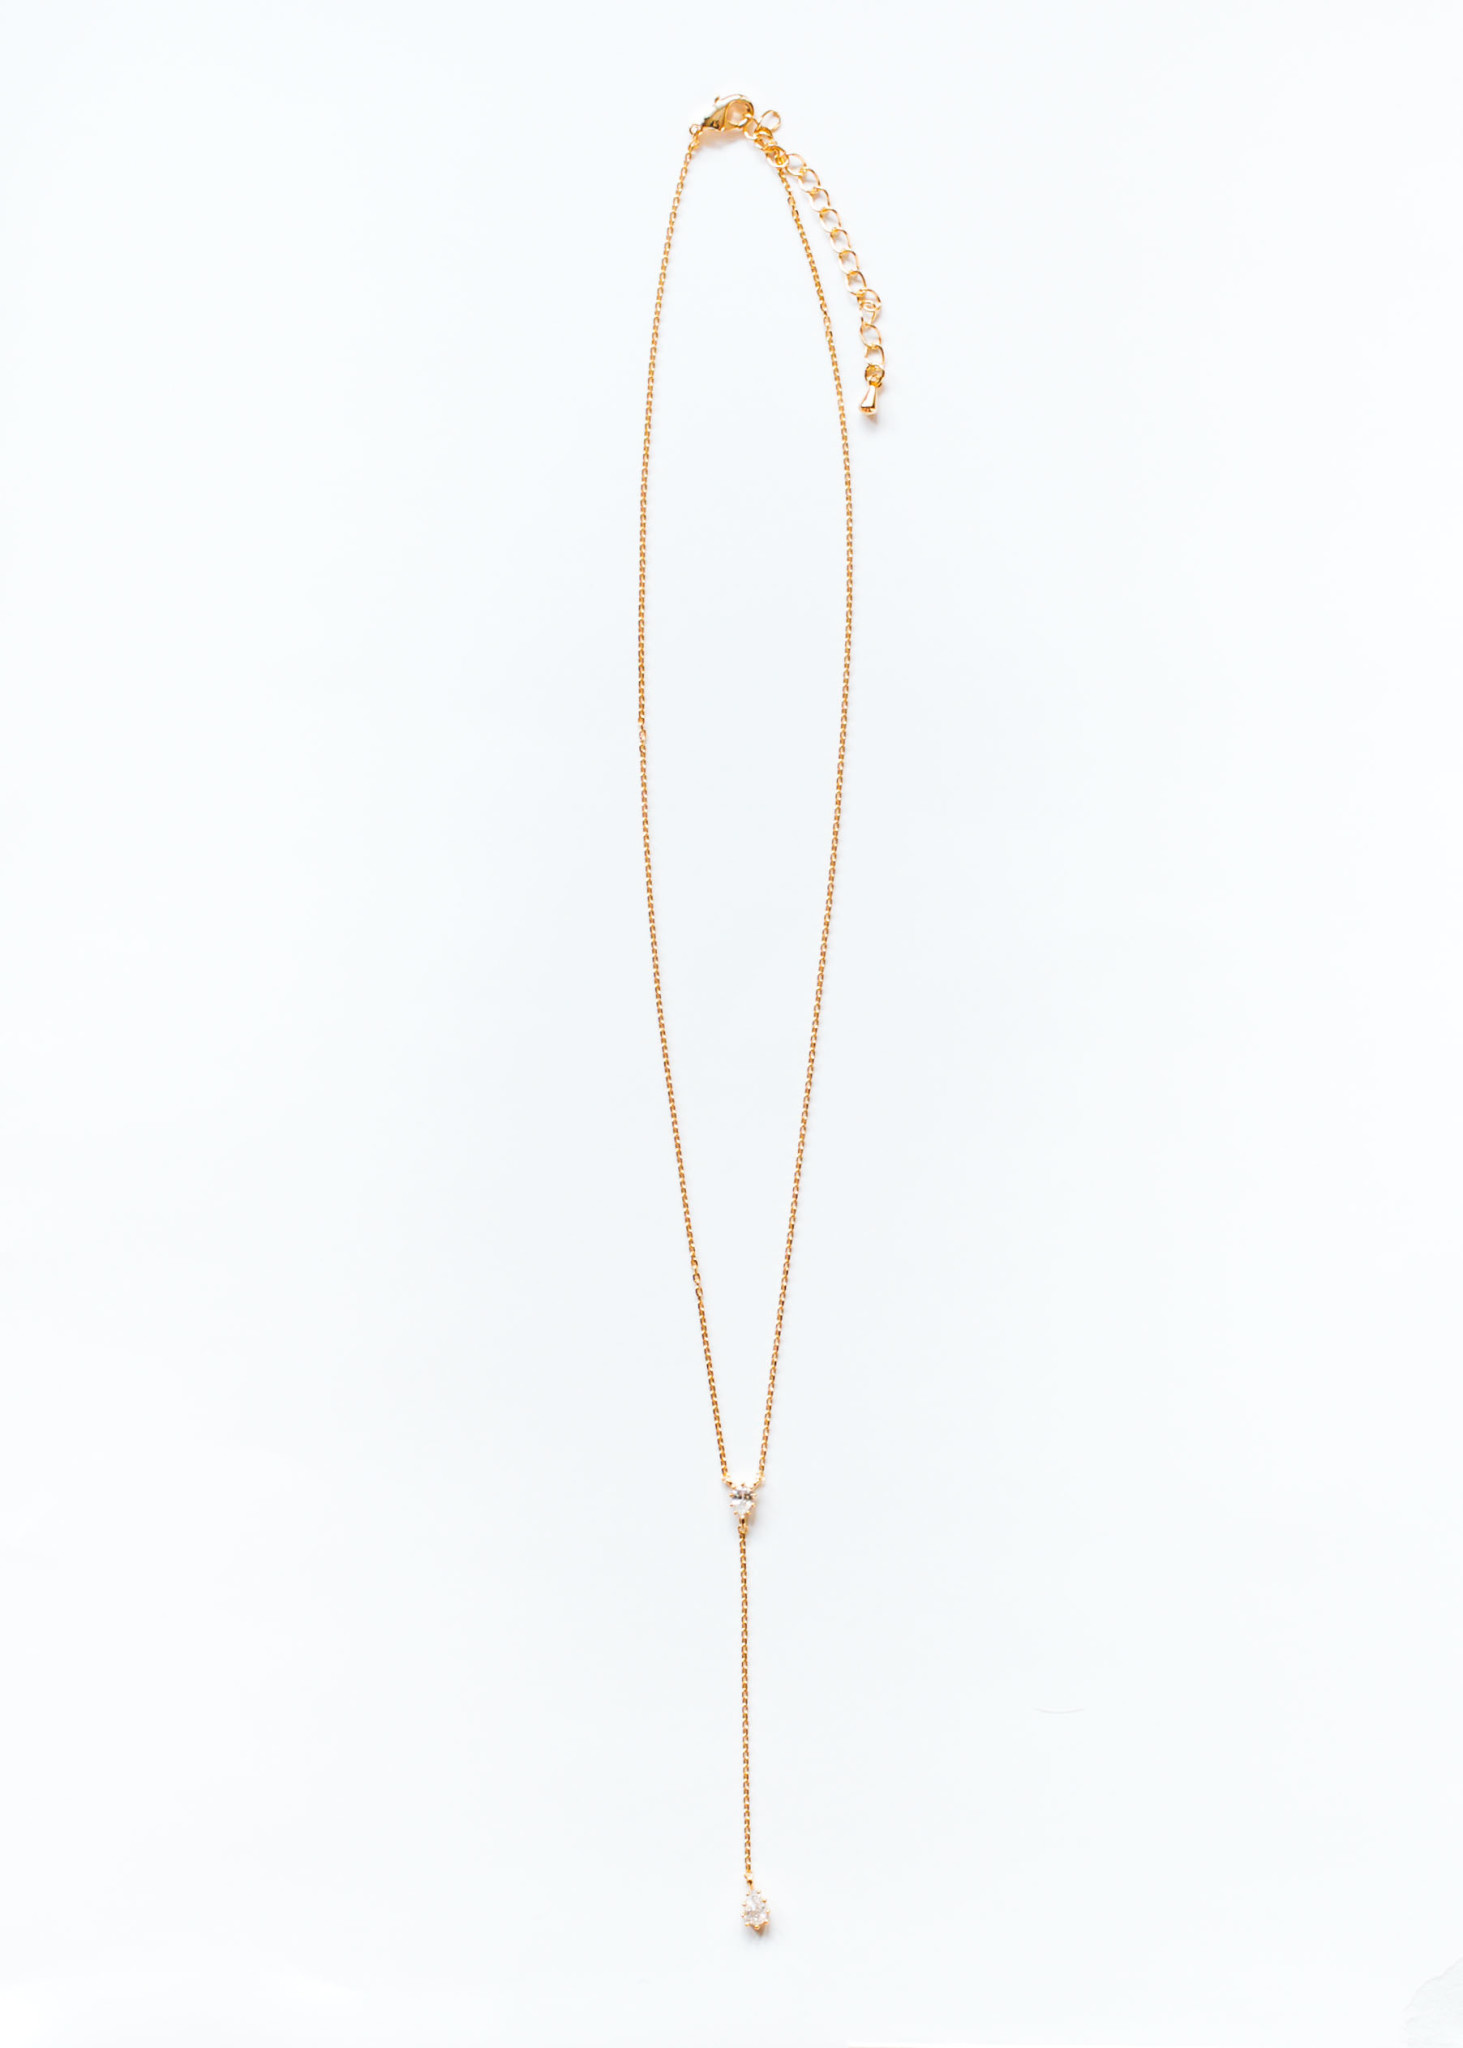 FIRST CLASS GOLD NECKLACE